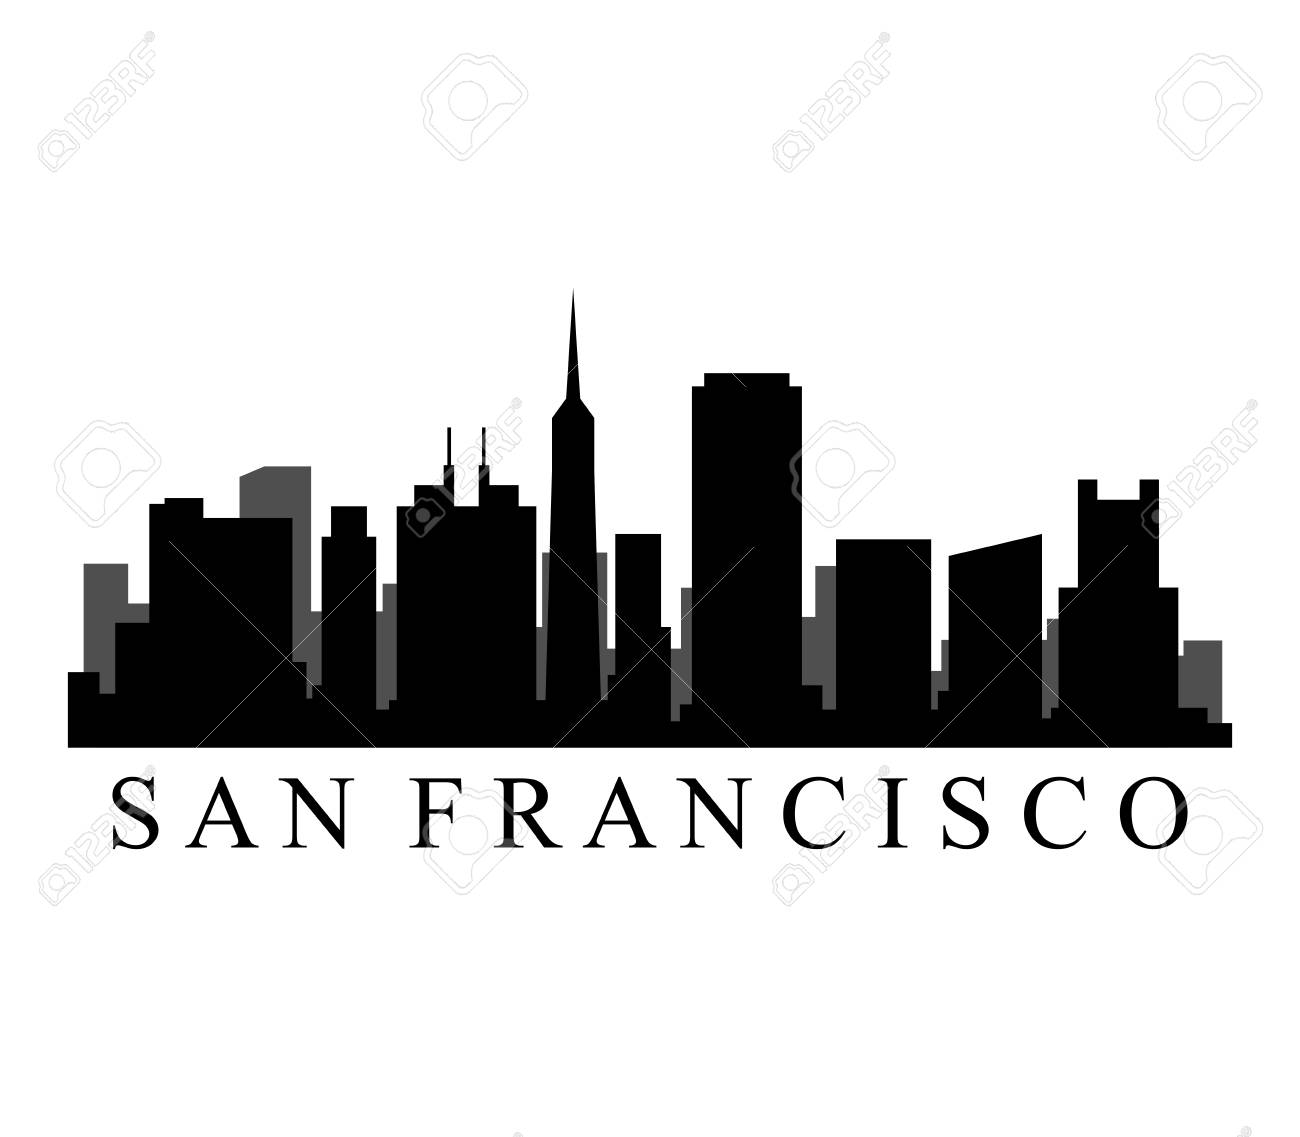 san francisco skyline royalty free cliparts vectors and stock rh 123rf com  san francisco skyline silhouette vector free